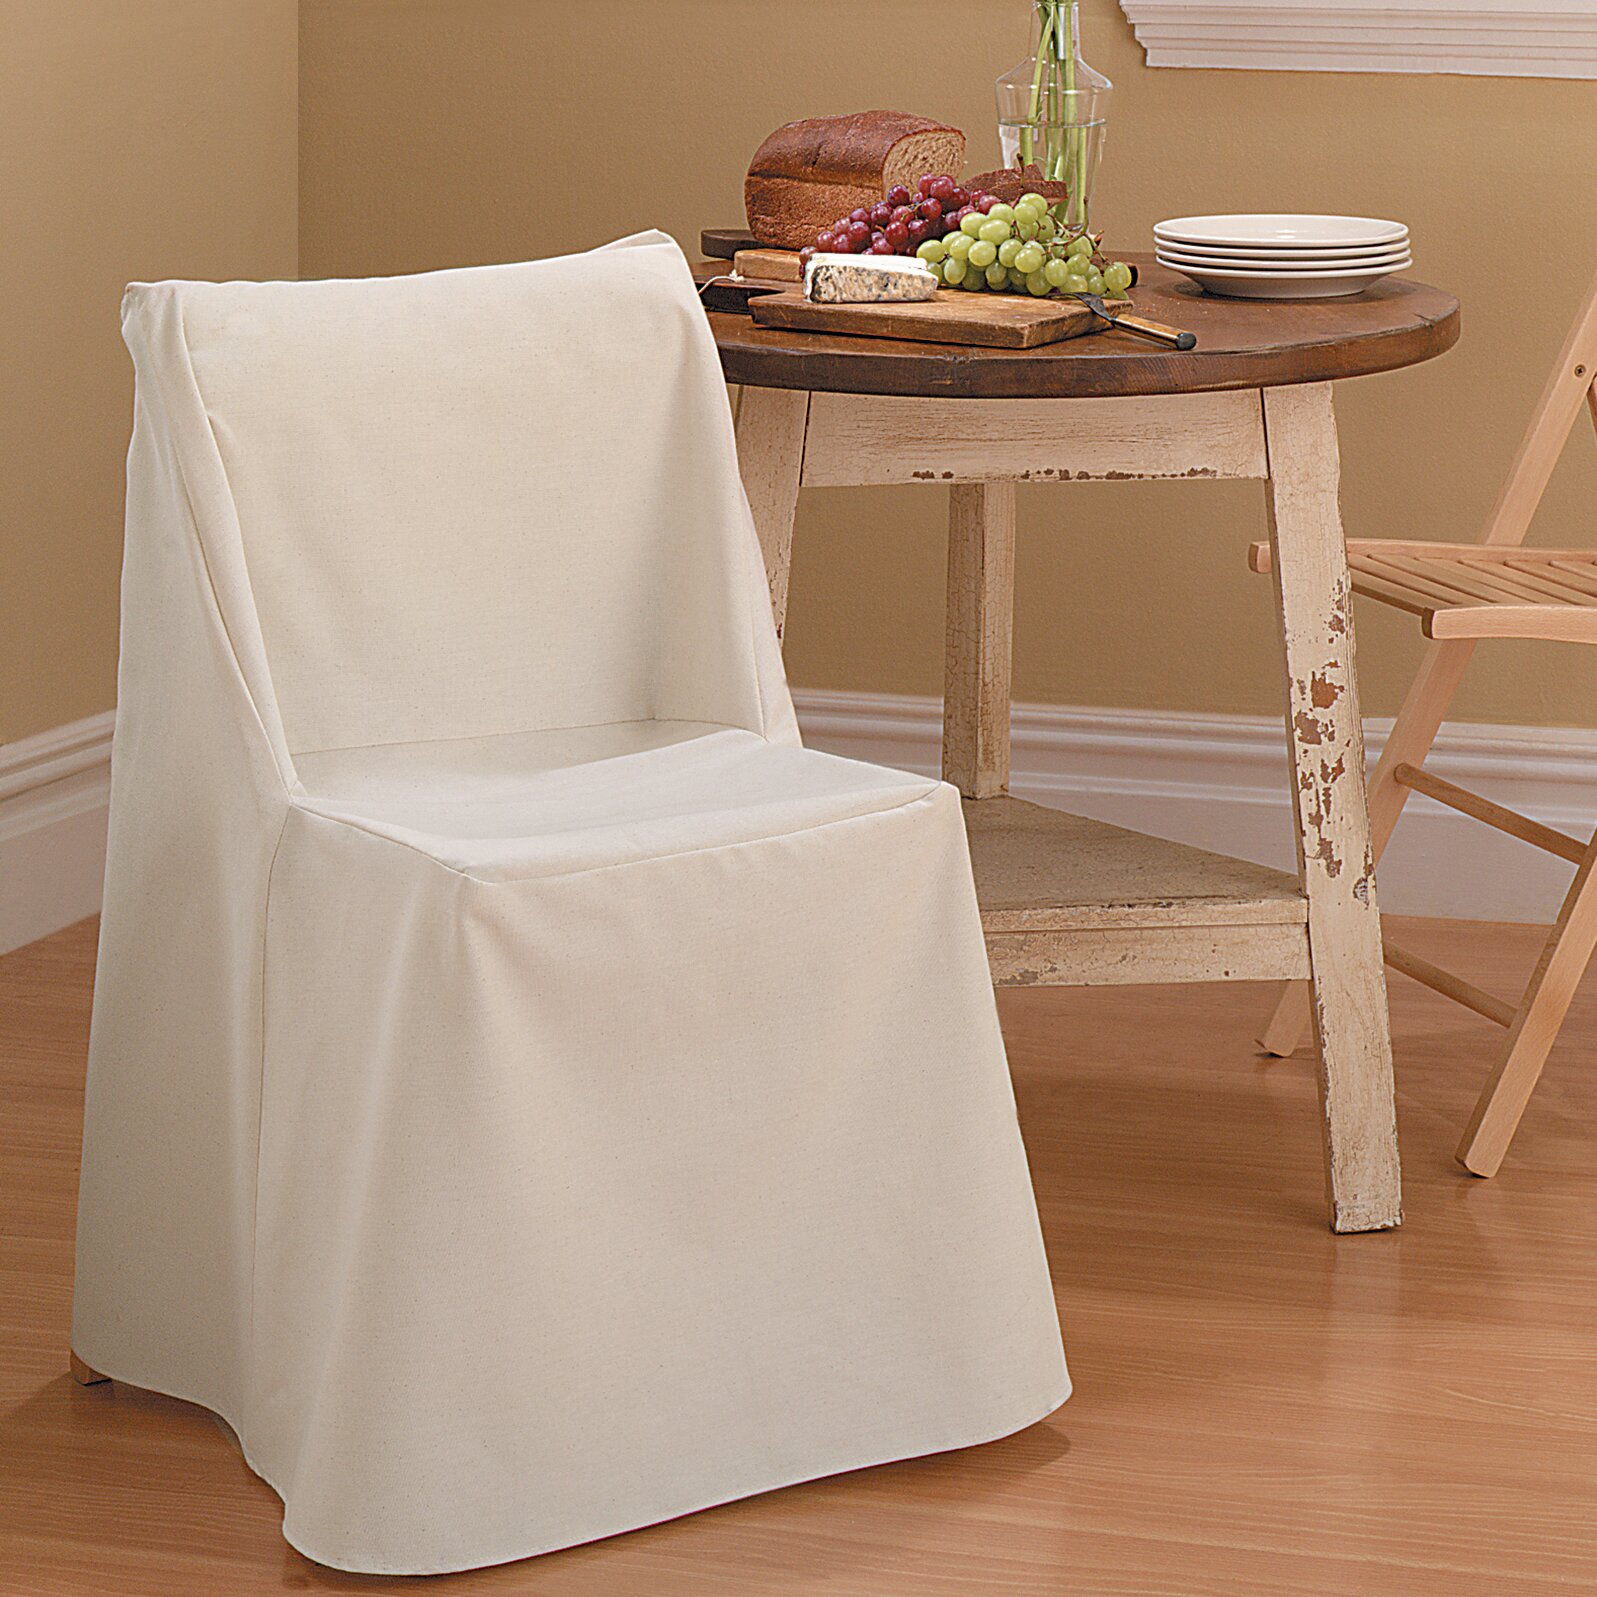 Sure Fit Cotton Duck Folding Chair Slipcover & Reviews